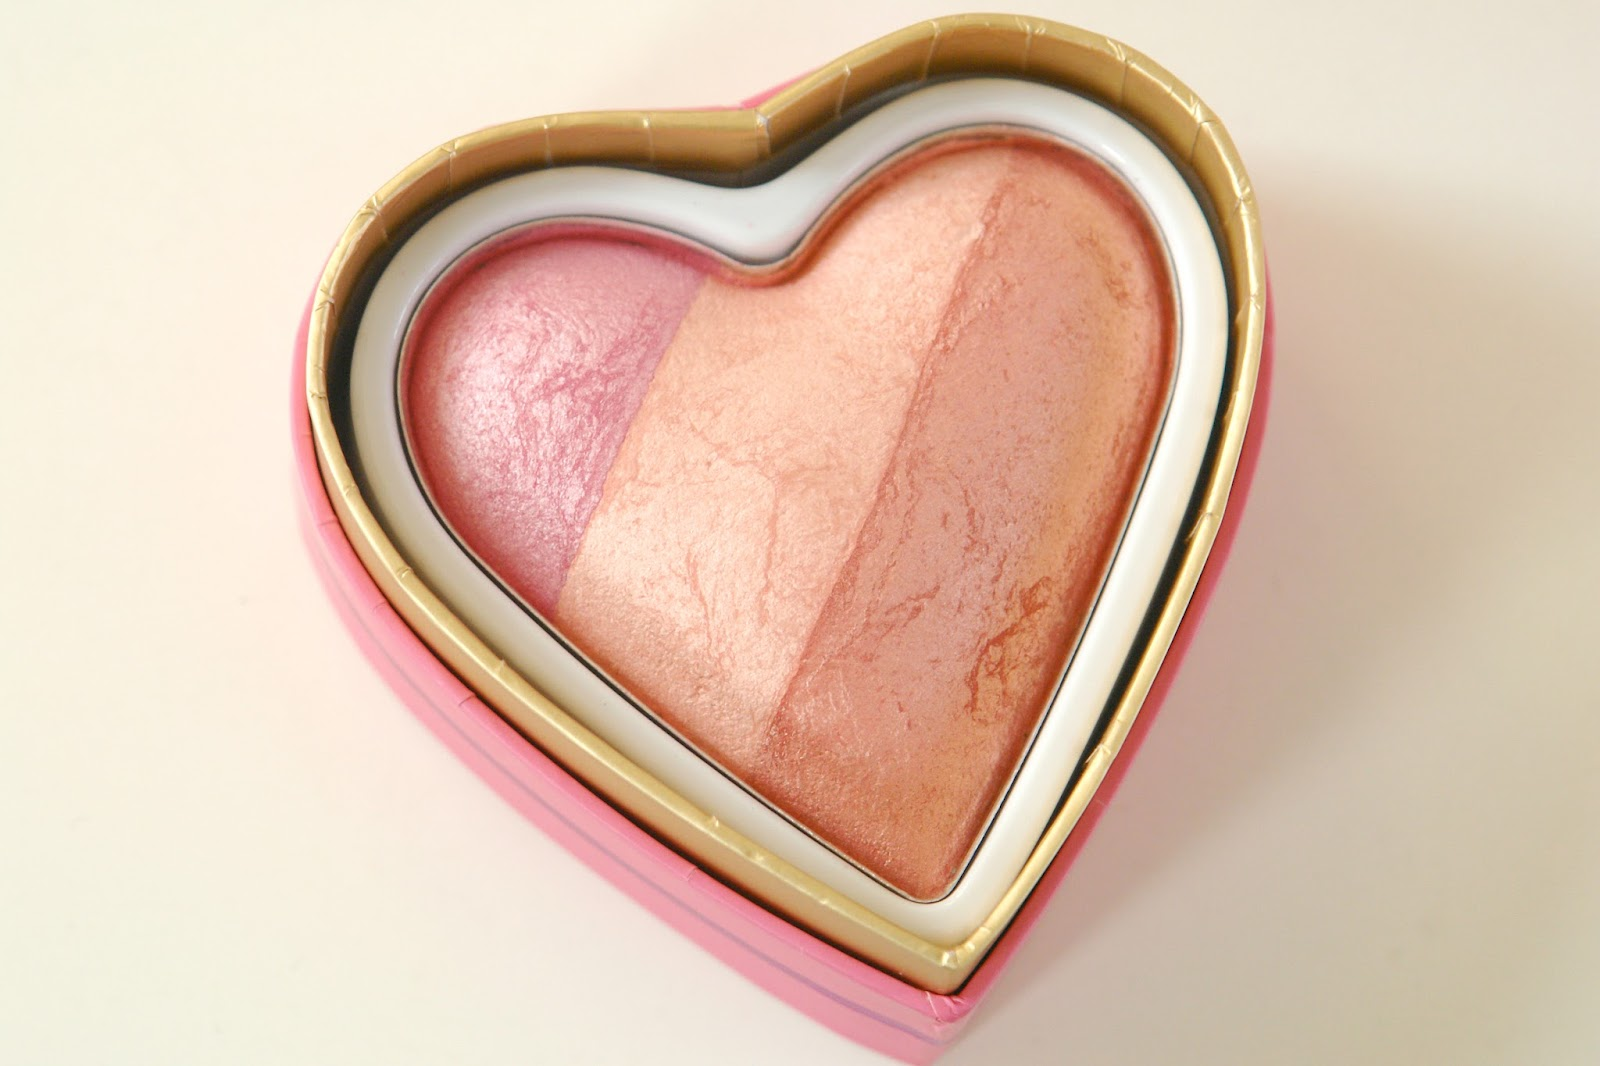 Makeup Revloution I ♡ Makeup Blushing Heart in Candy Queen of Hearts review, Makeup Revolution, make up, blusher, beauty, review, swatches, blogger